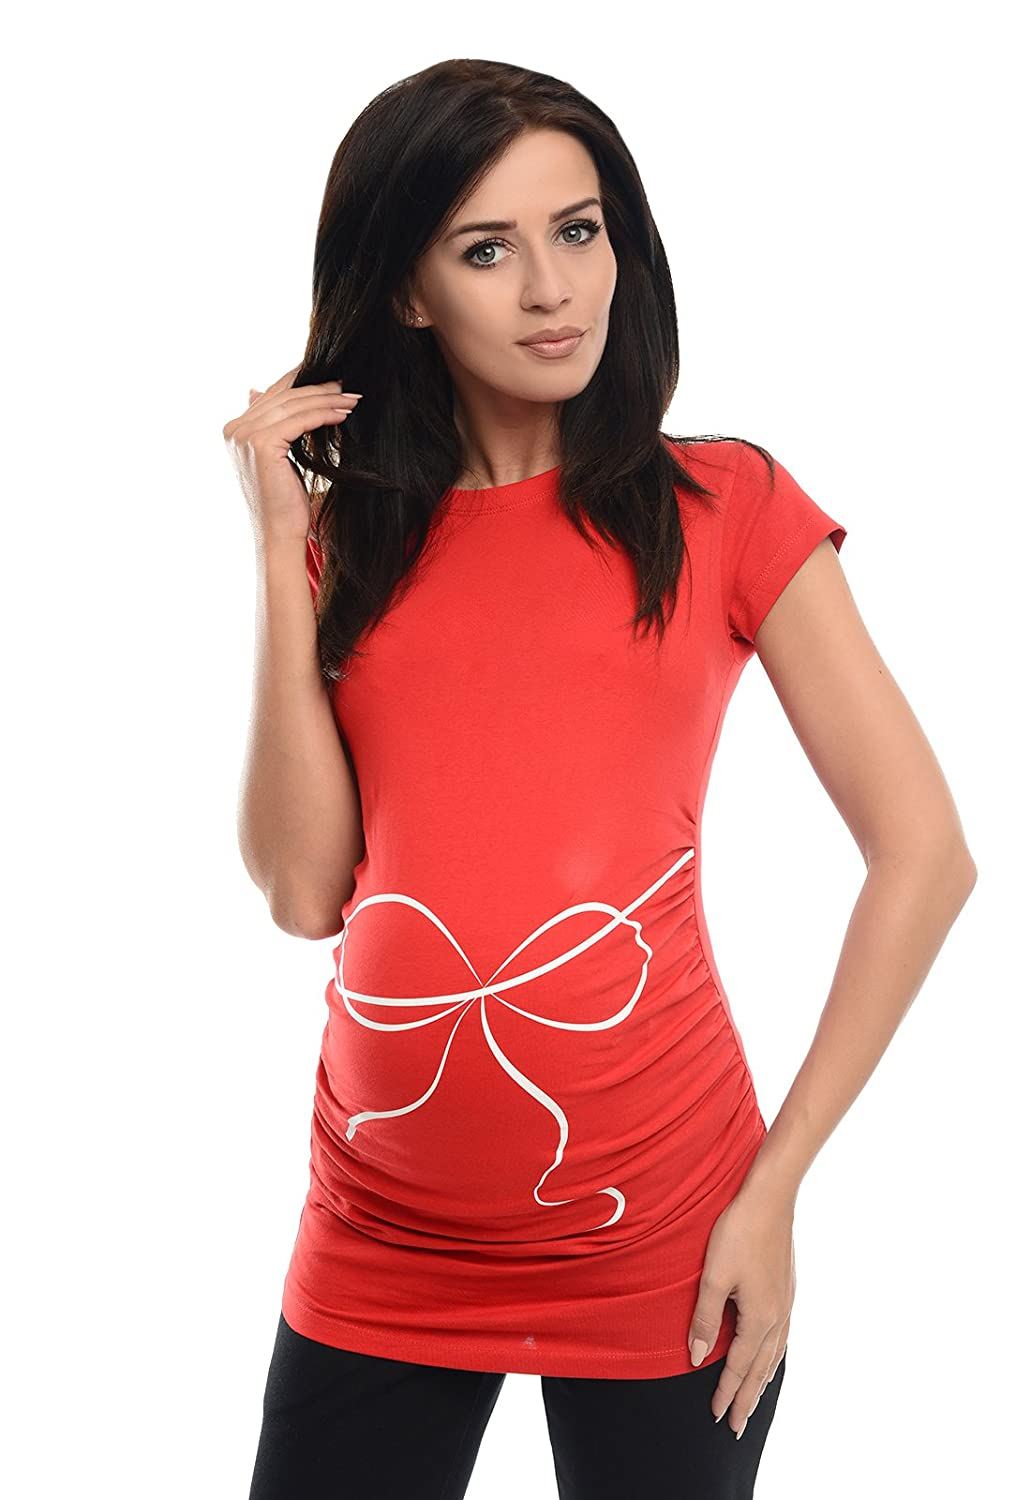 Purpless Maternity Printed Cotton Top Pregnancy T-Shirt Tee for Pregnant Women Slogan Bow Print 2007